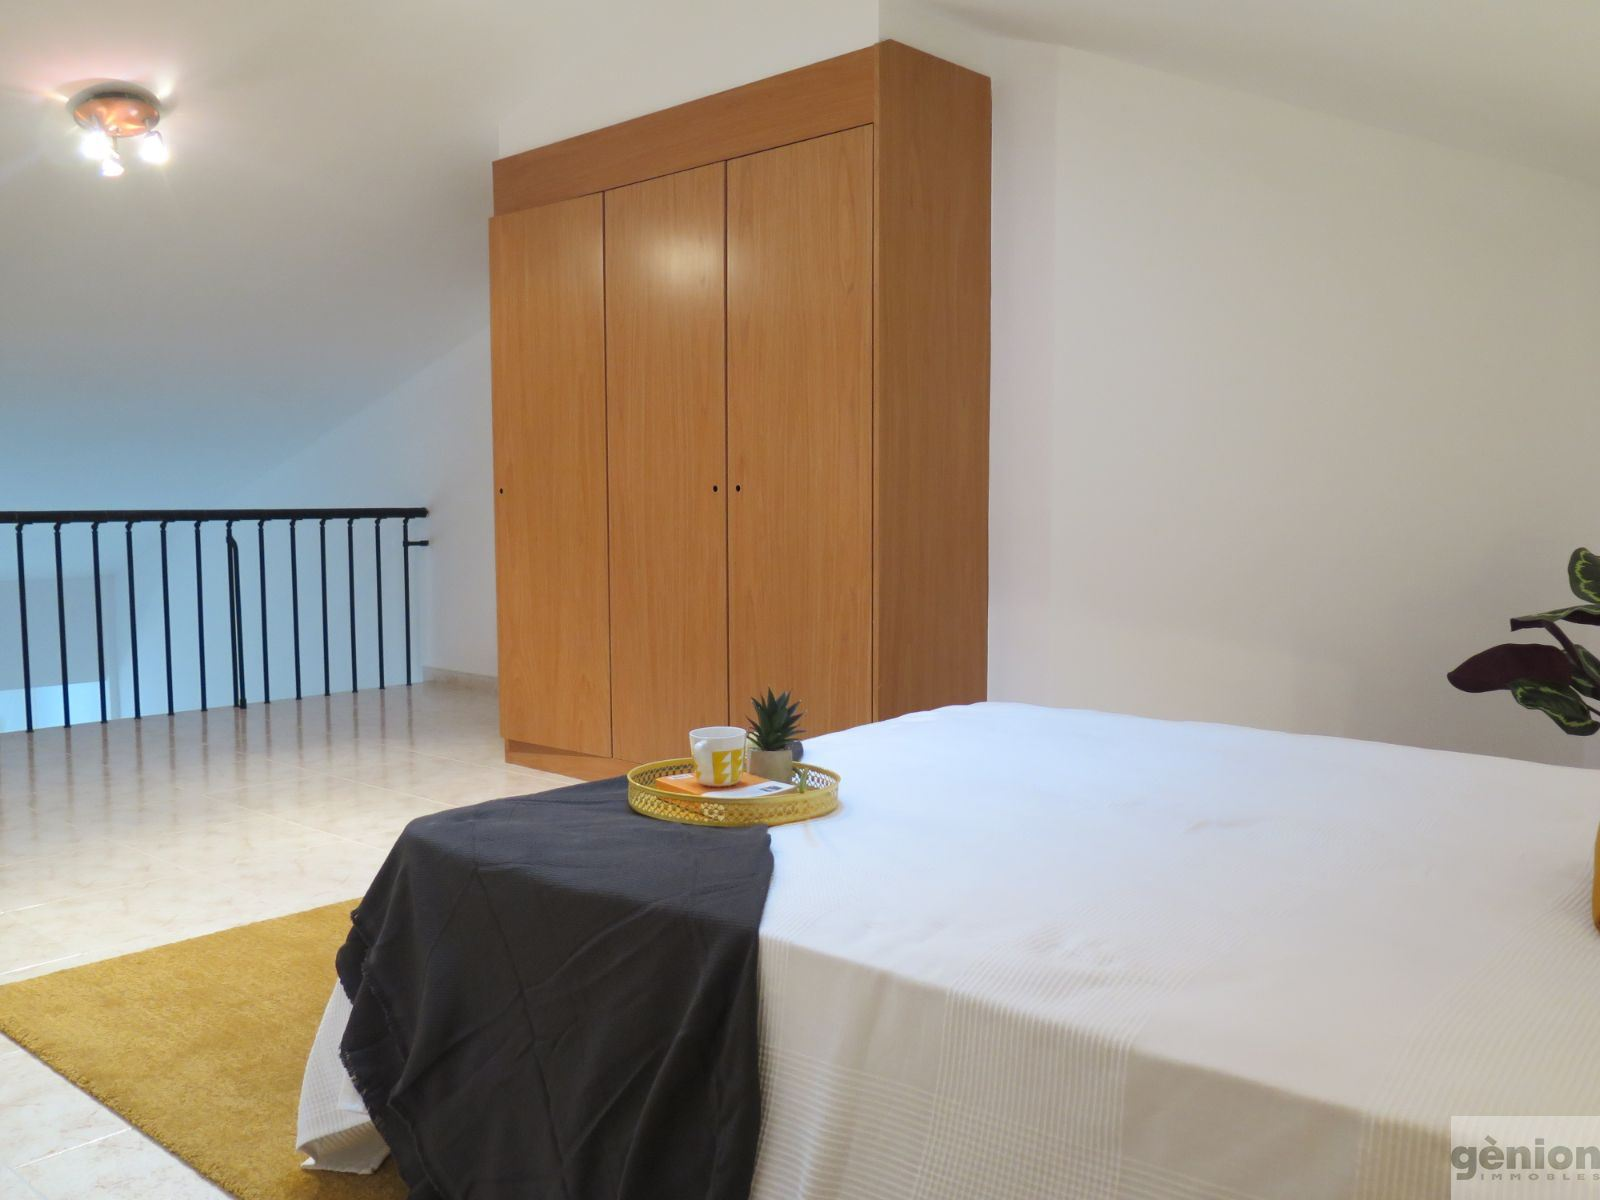 4-BEDROOM 2-STOREY APARTMENT IN GIRONA'S PERICOT AREA. WITH LARGE PARKING SPACE INCLUDED